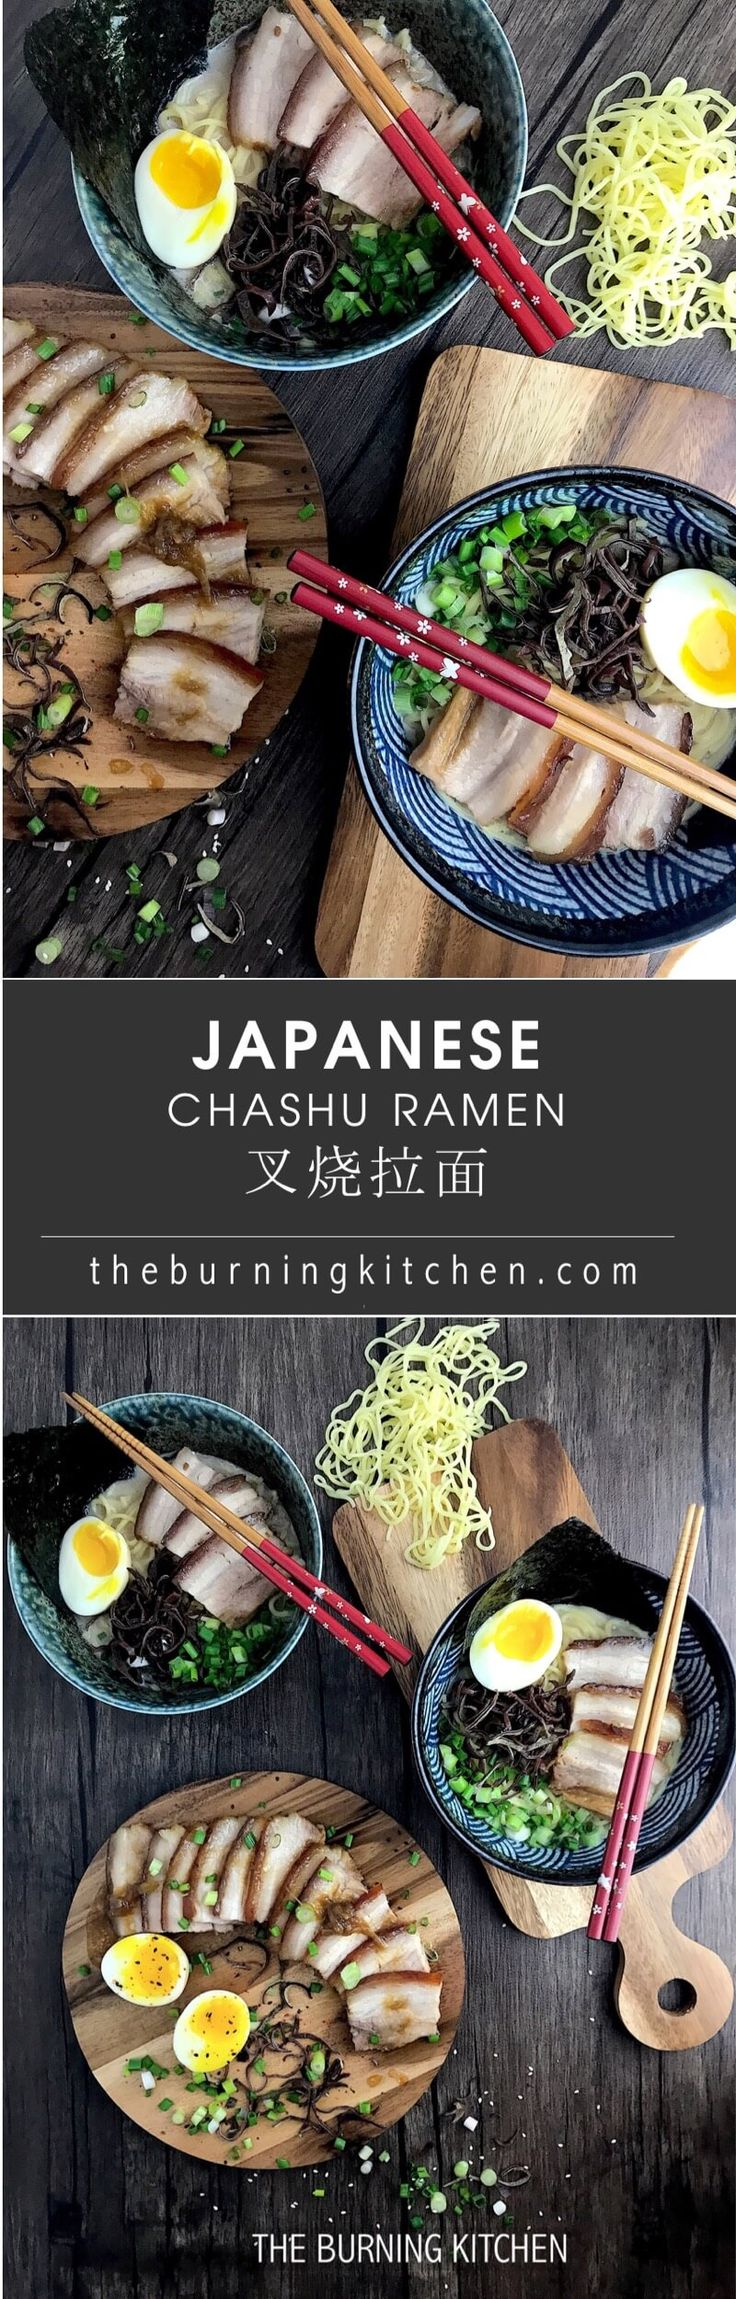 Tonkotsu Ramen with Pork Belly Chashu: Nothing beats the satisfaction of sitting down for a family meal of home-made MSG-free Japanese Chashu Ramen in a collagen-rich pork bone broth.